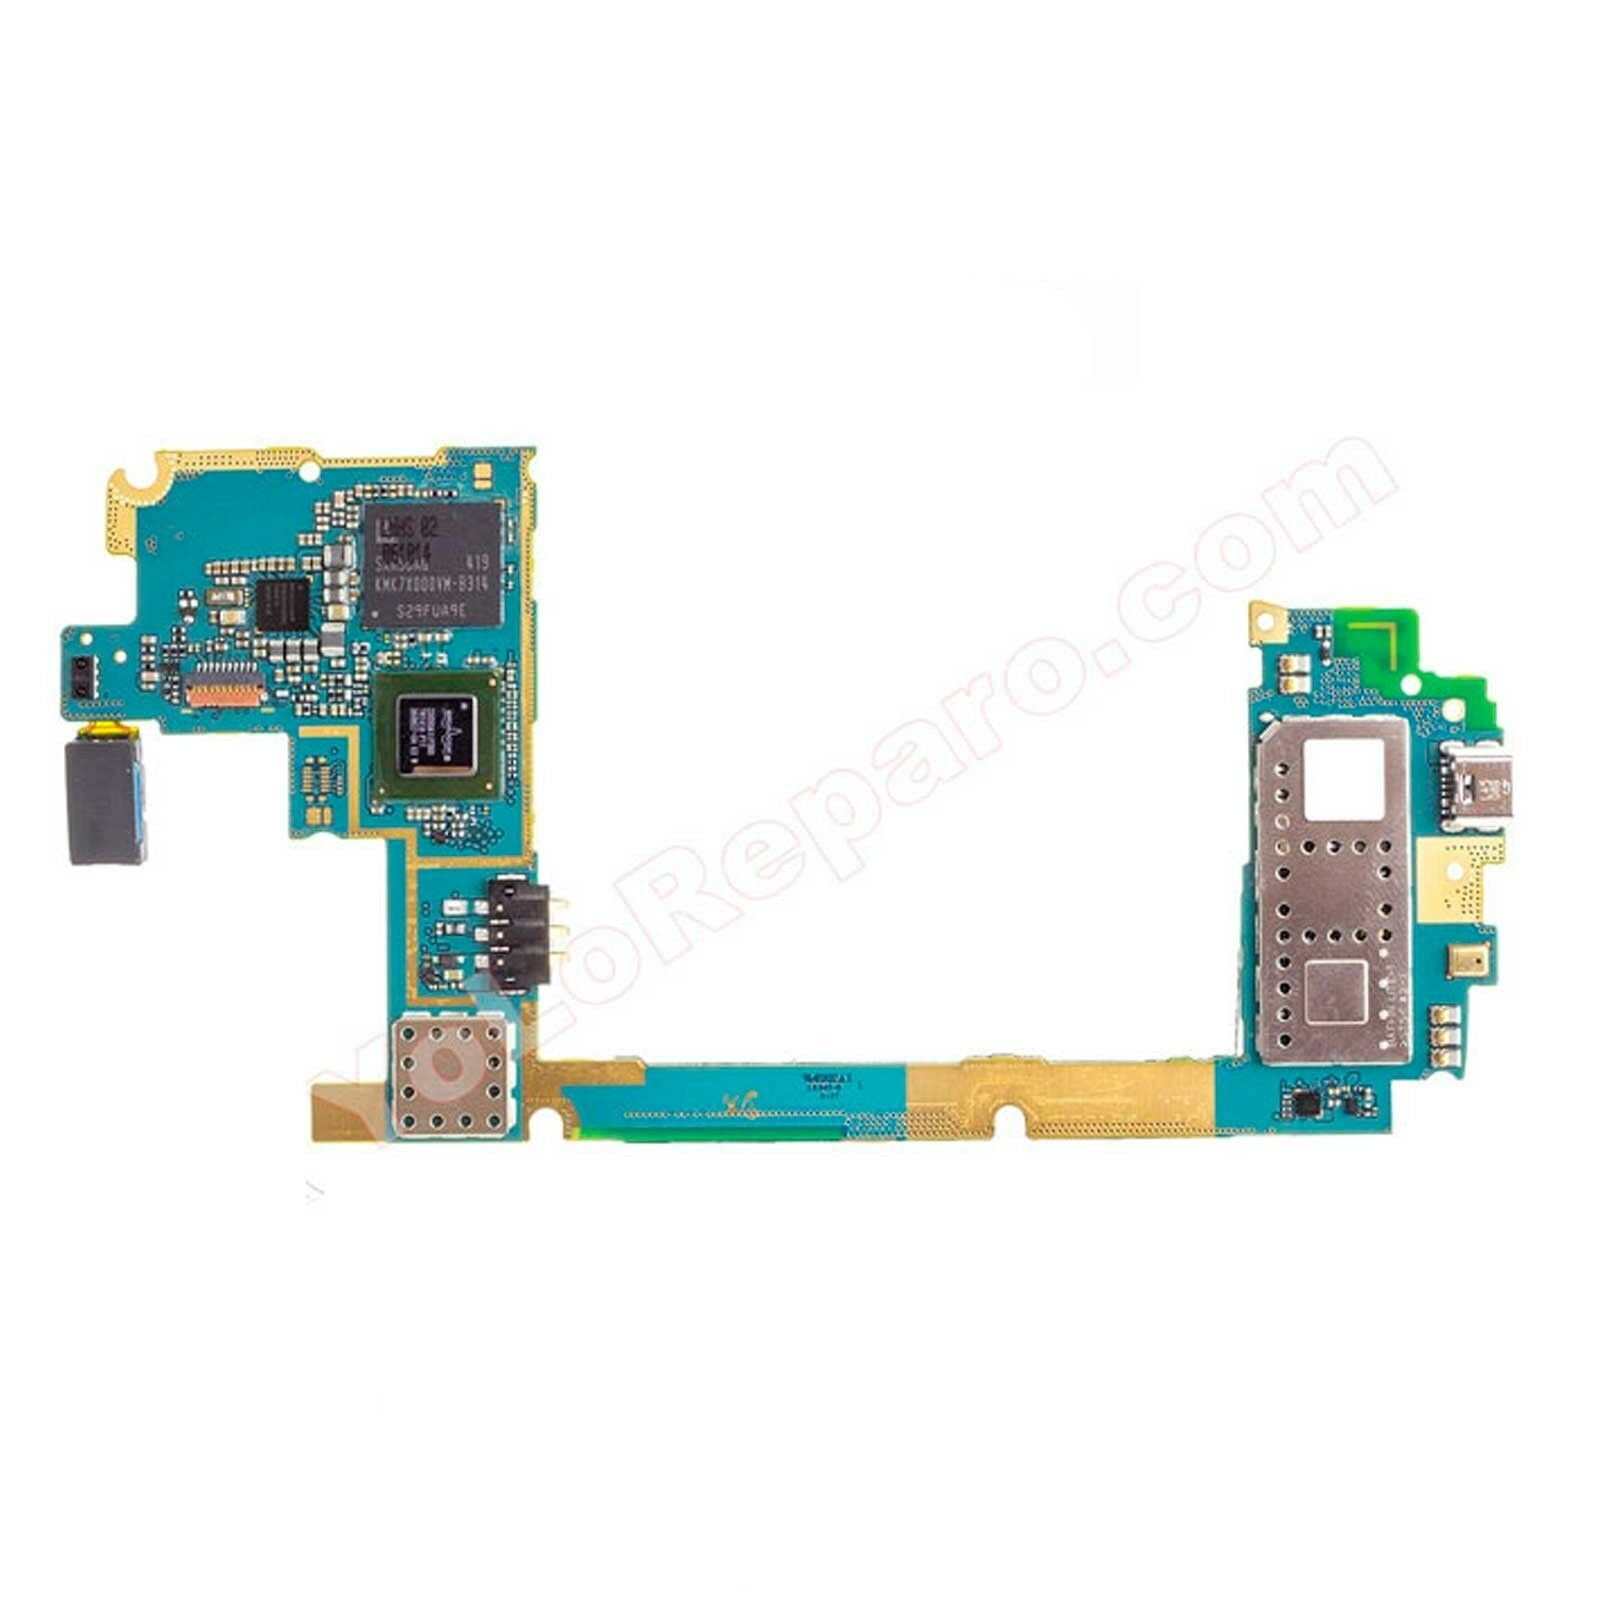 Placa Base Motherboard Samsung Galaxy Grand Neo Plus Gt I9060i Ds 8 Gb Libre 1 Of 1only 0 Available